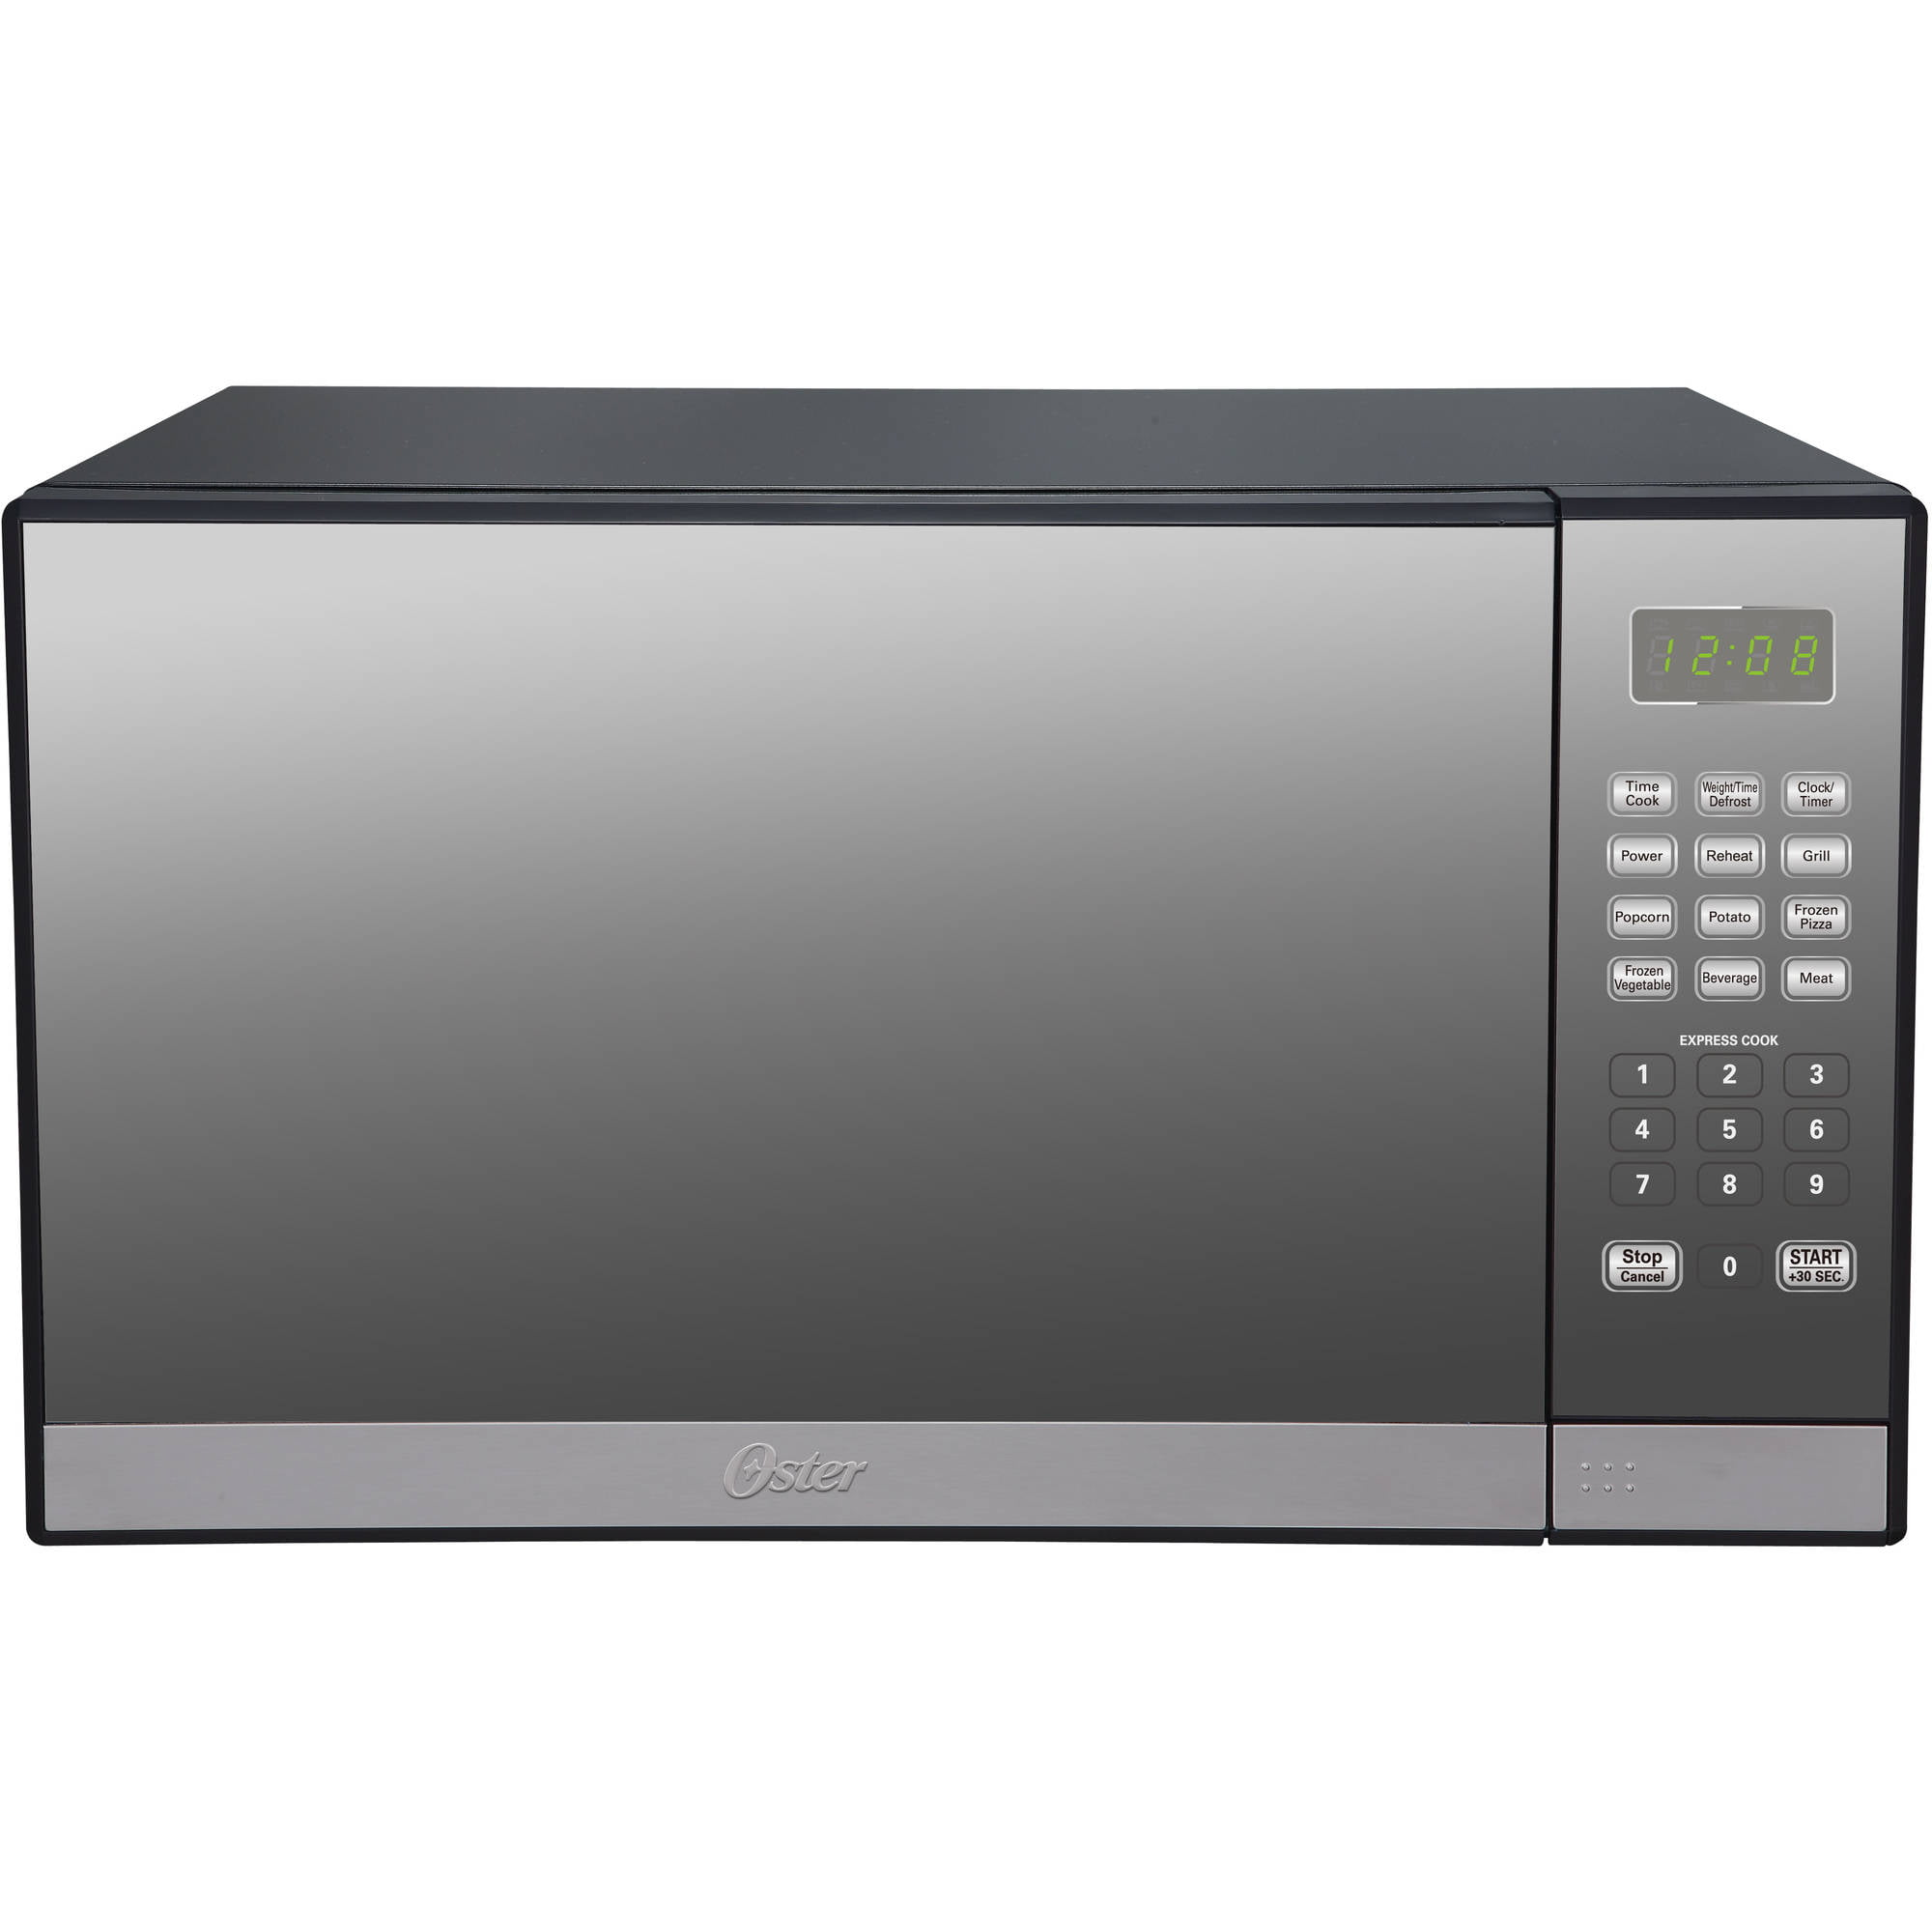 Oster 13 Cu Ft Microwave Oven With Grill Stainless Steel With